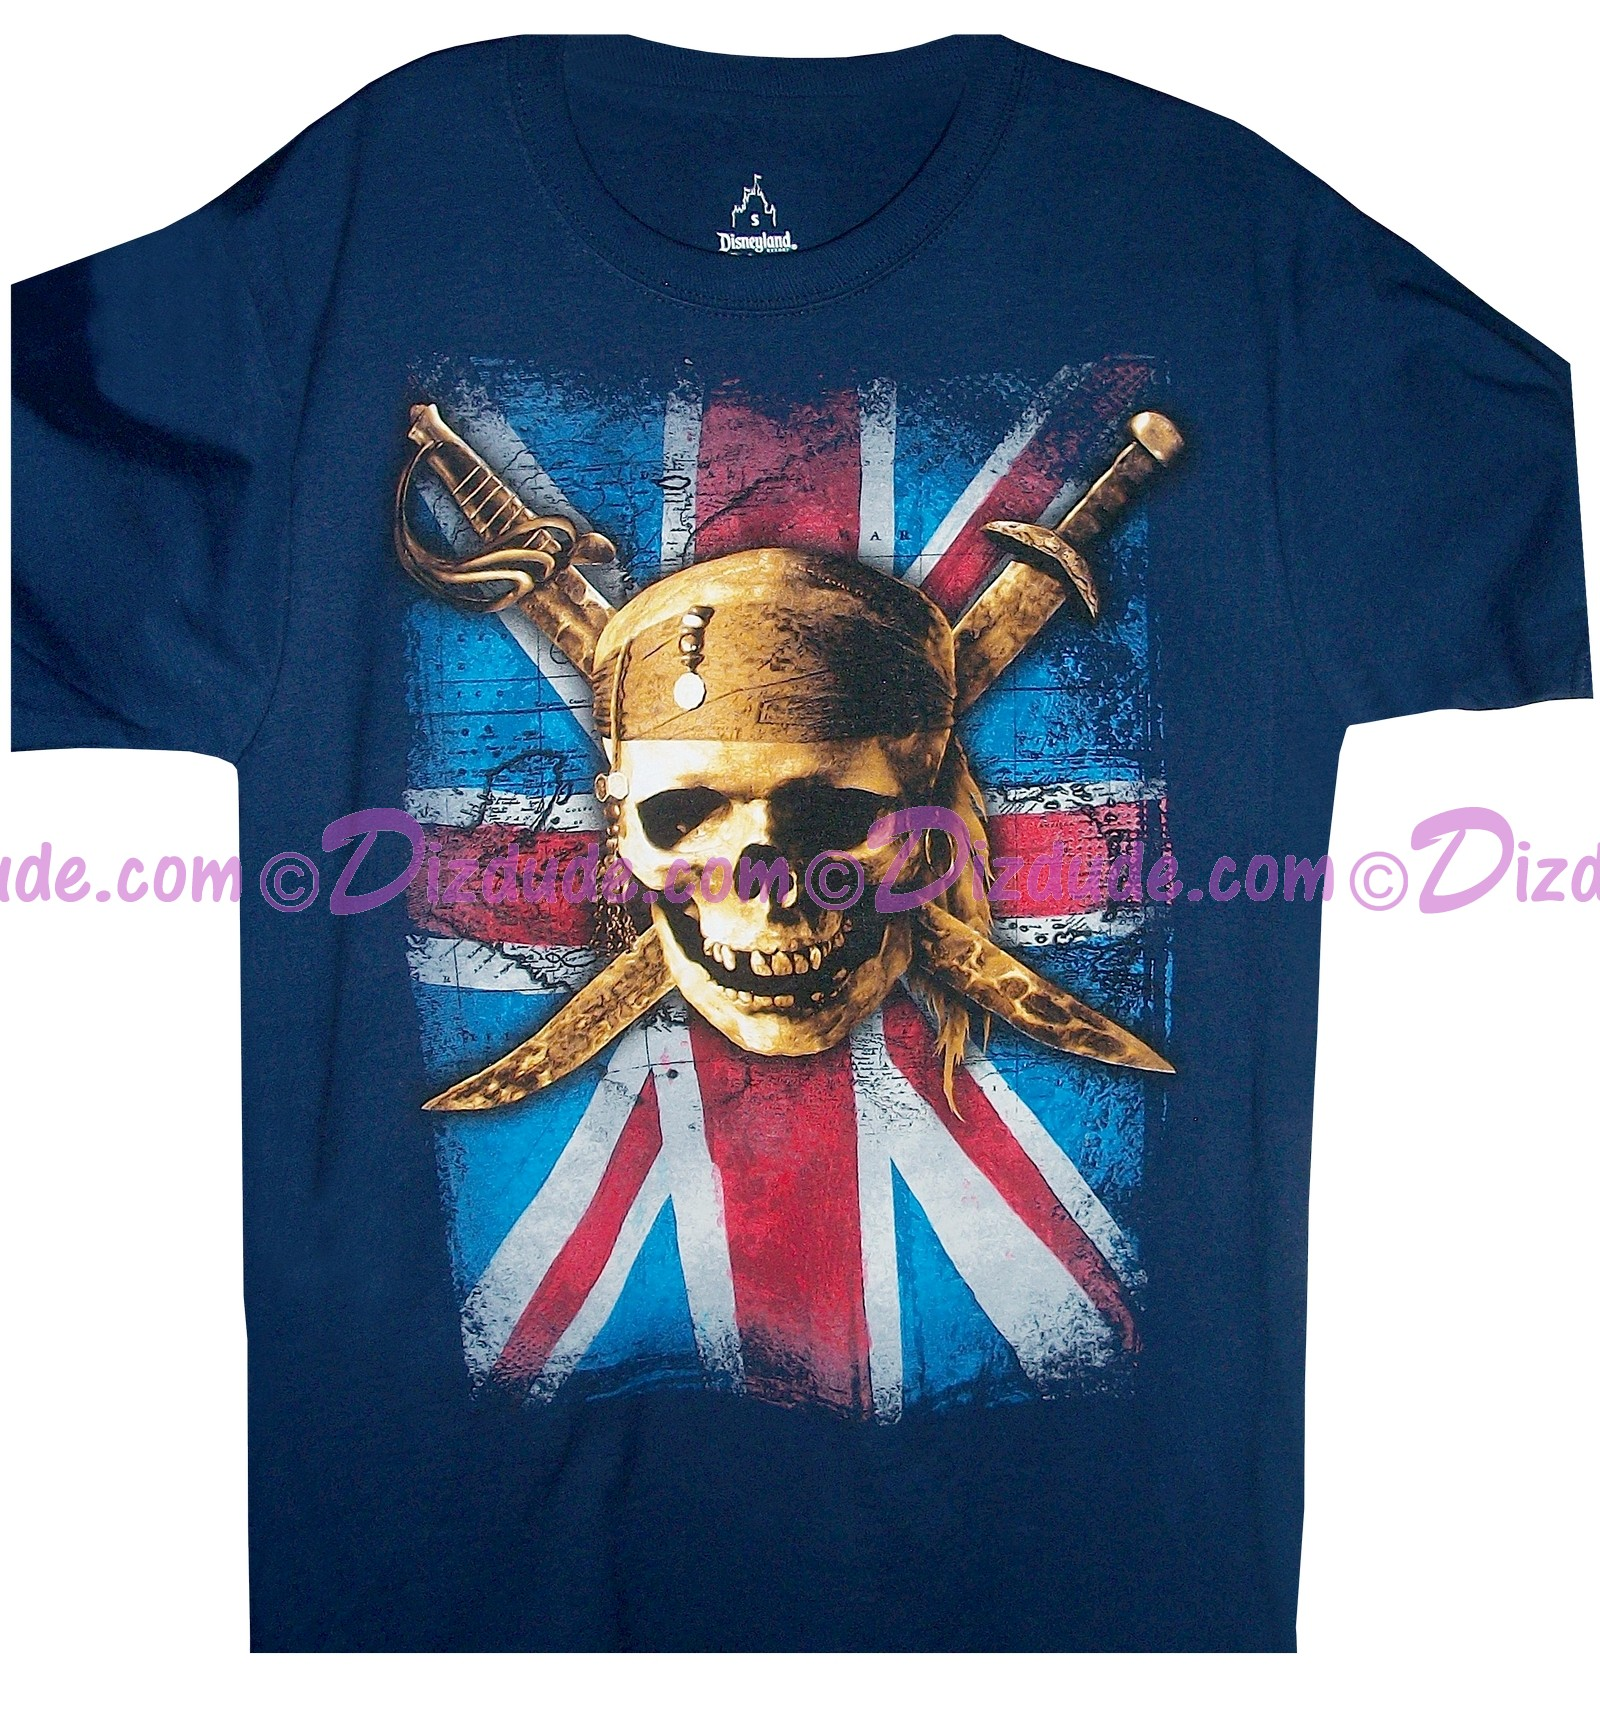 Disney's Pirates of the Caribbean Union Jack and Skull and Cross Swords T-shirt